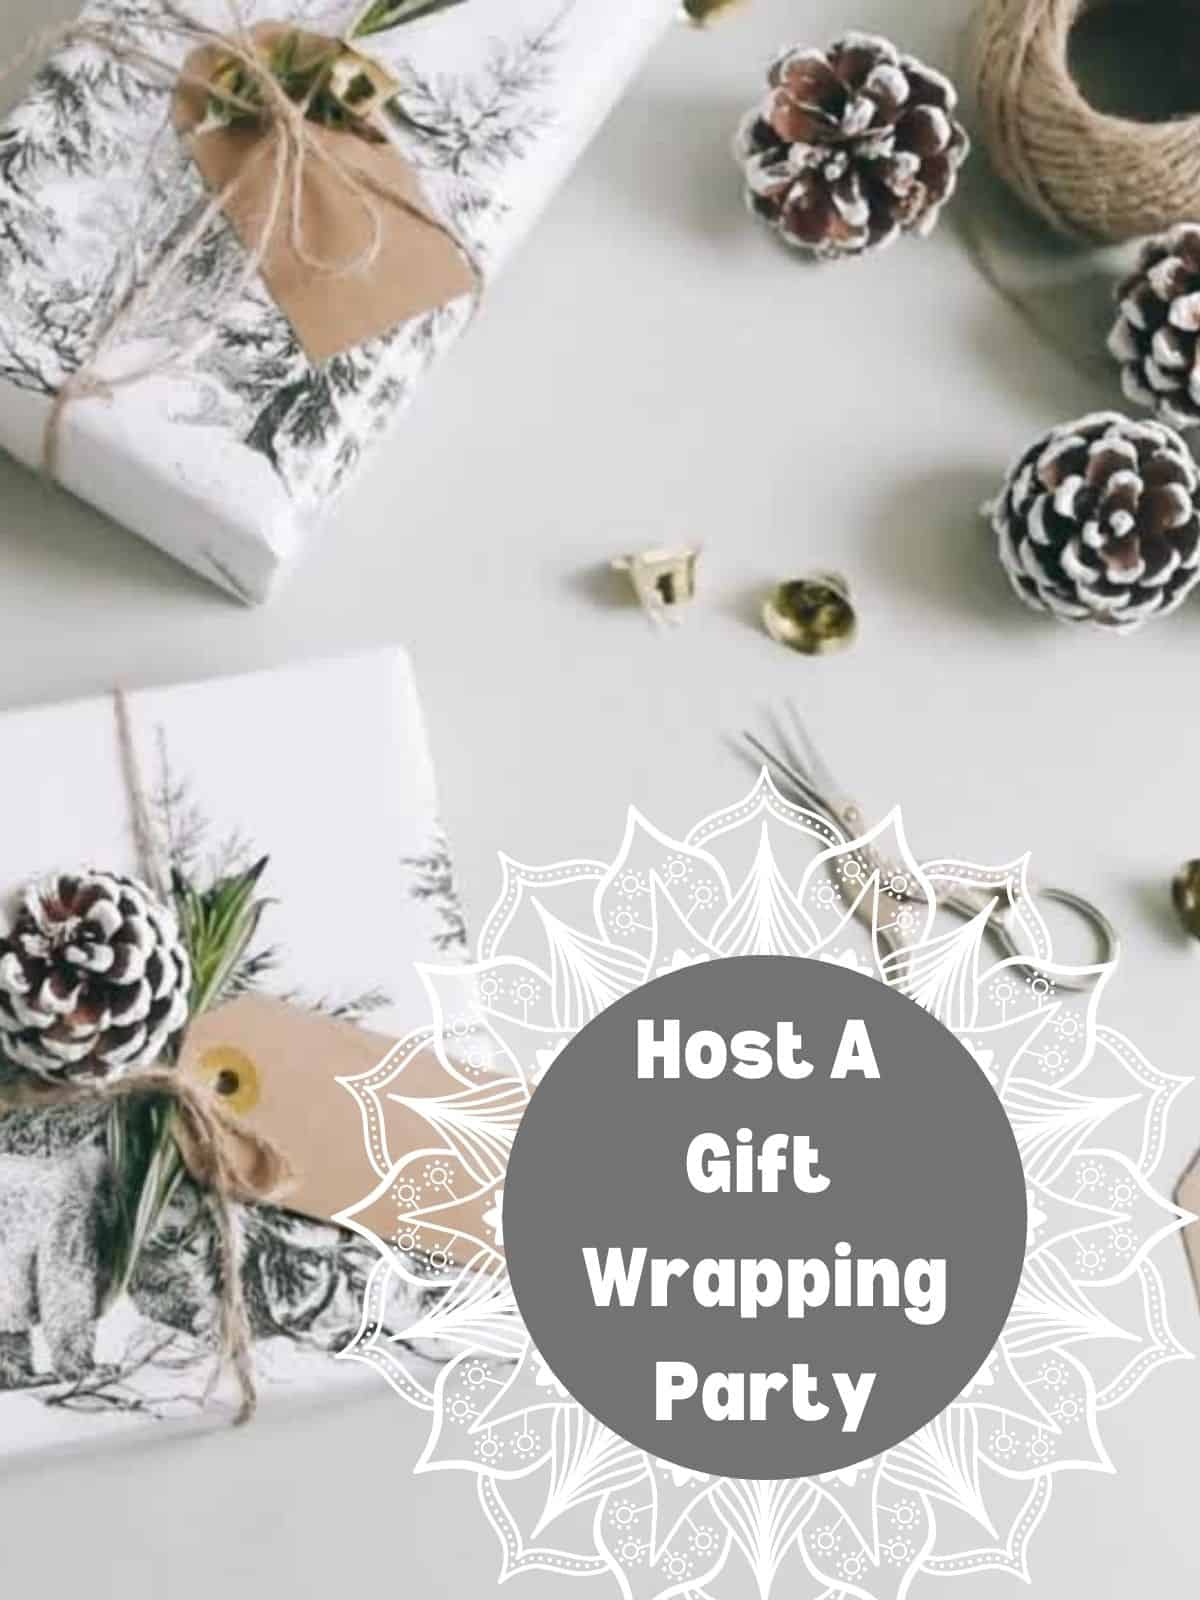 How A Gift Wrapping Party sign and wrapped presents